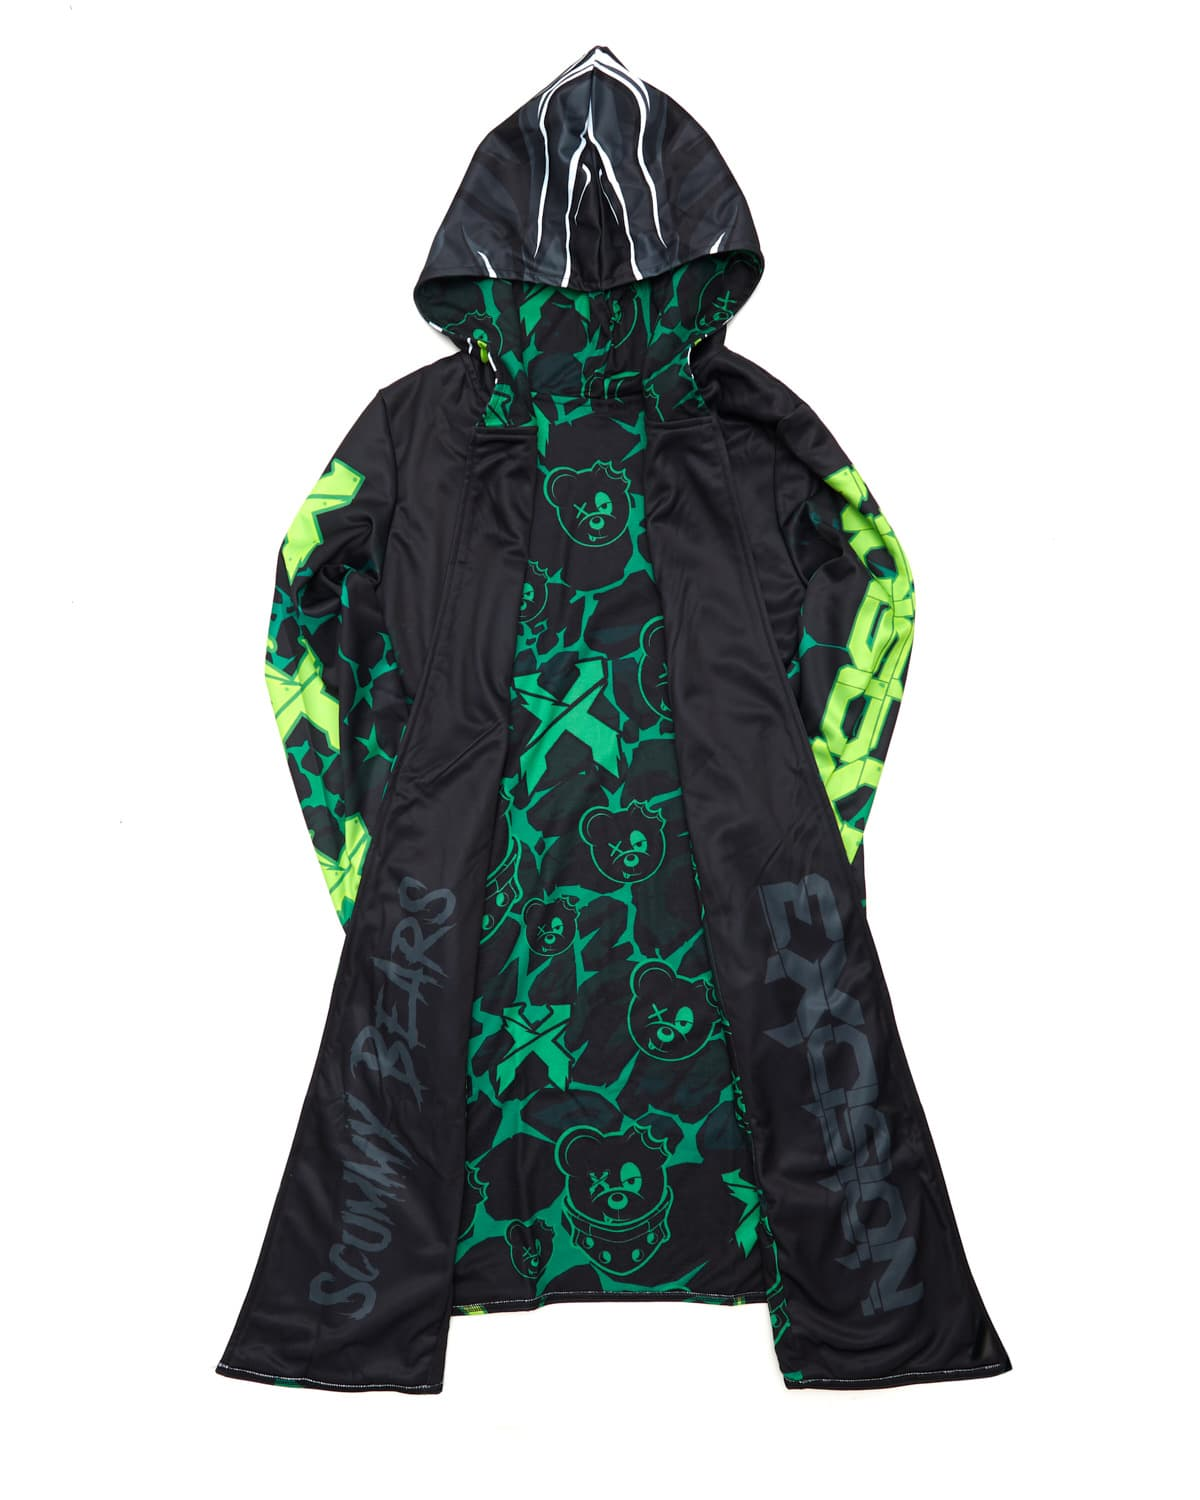 Excision x Scummy Bears Dye Sub Cloak - Green